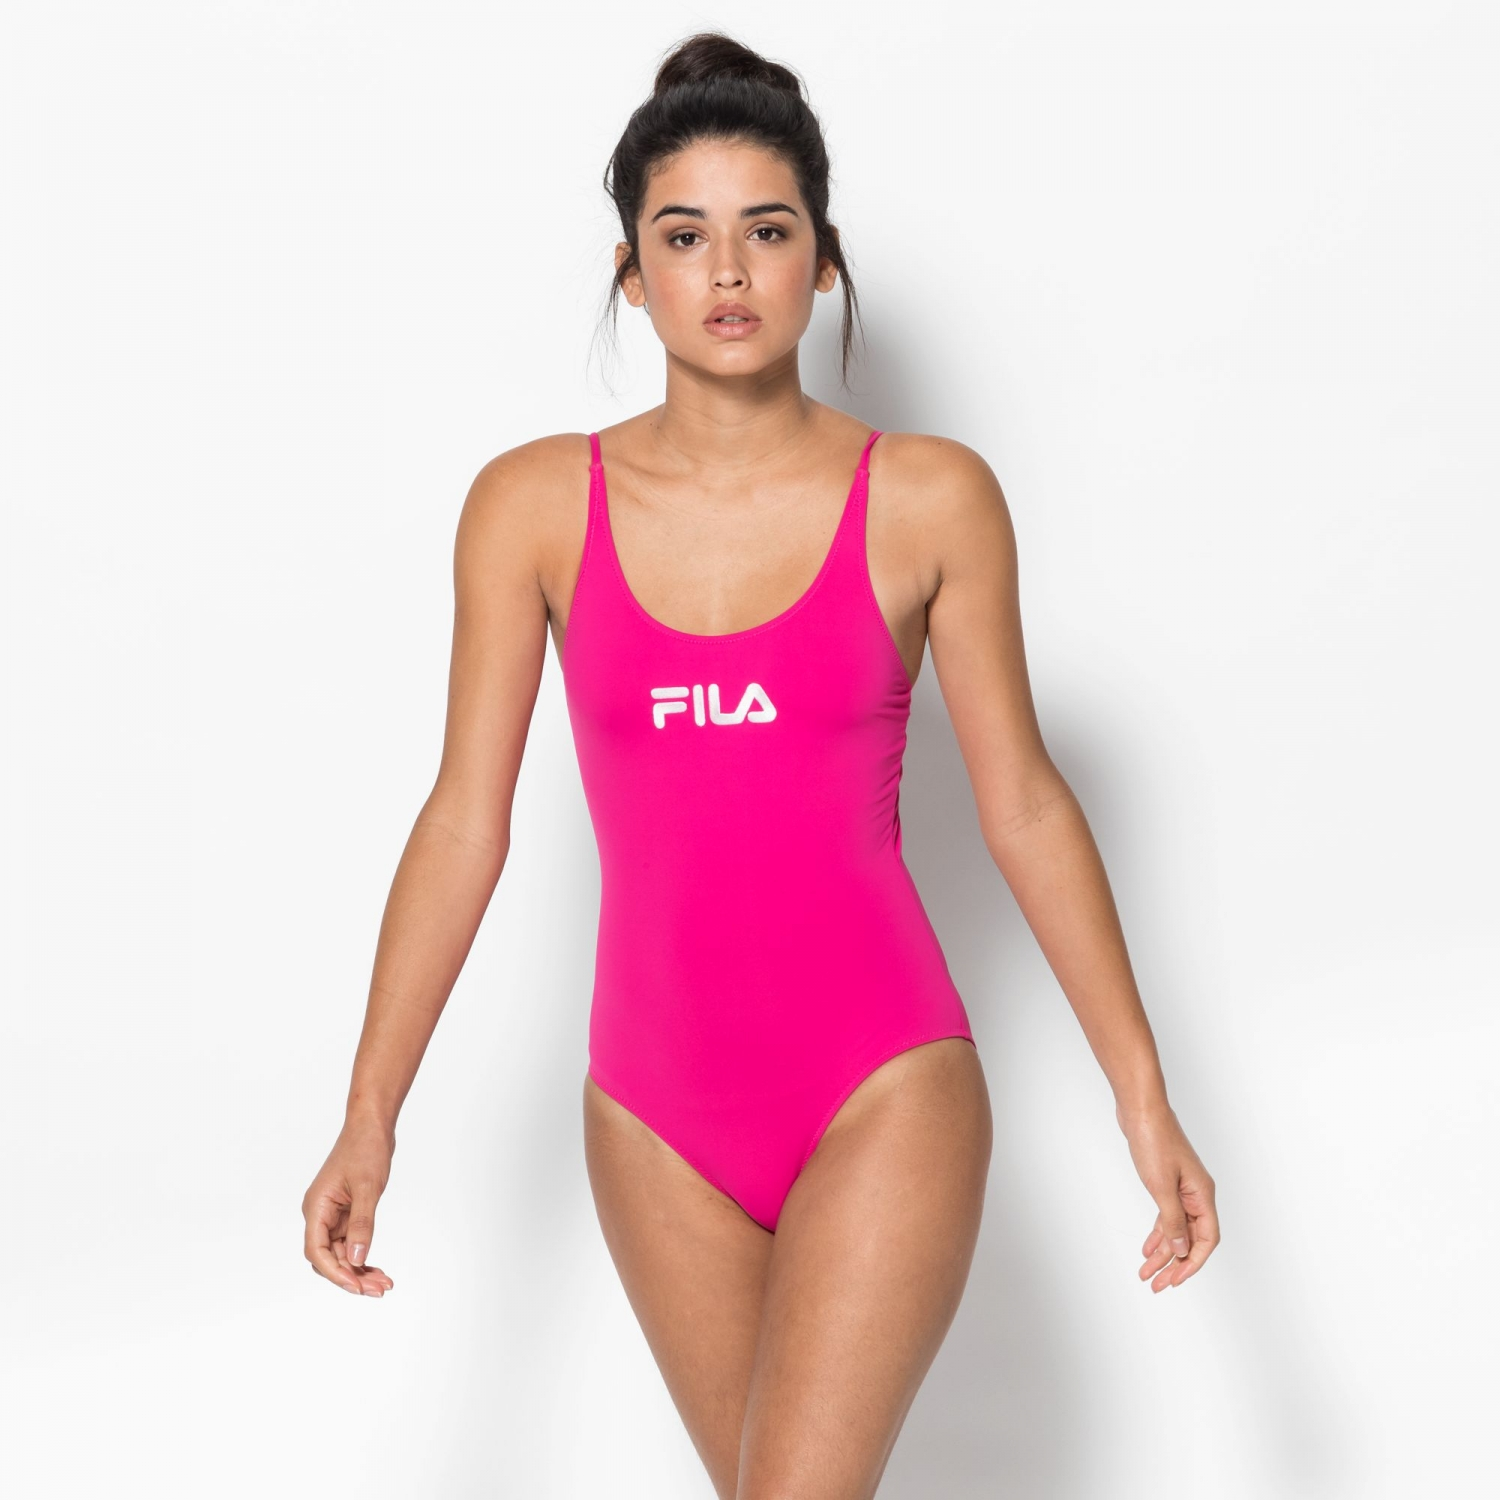 Fila Saidi Bathing Suit Bild 1